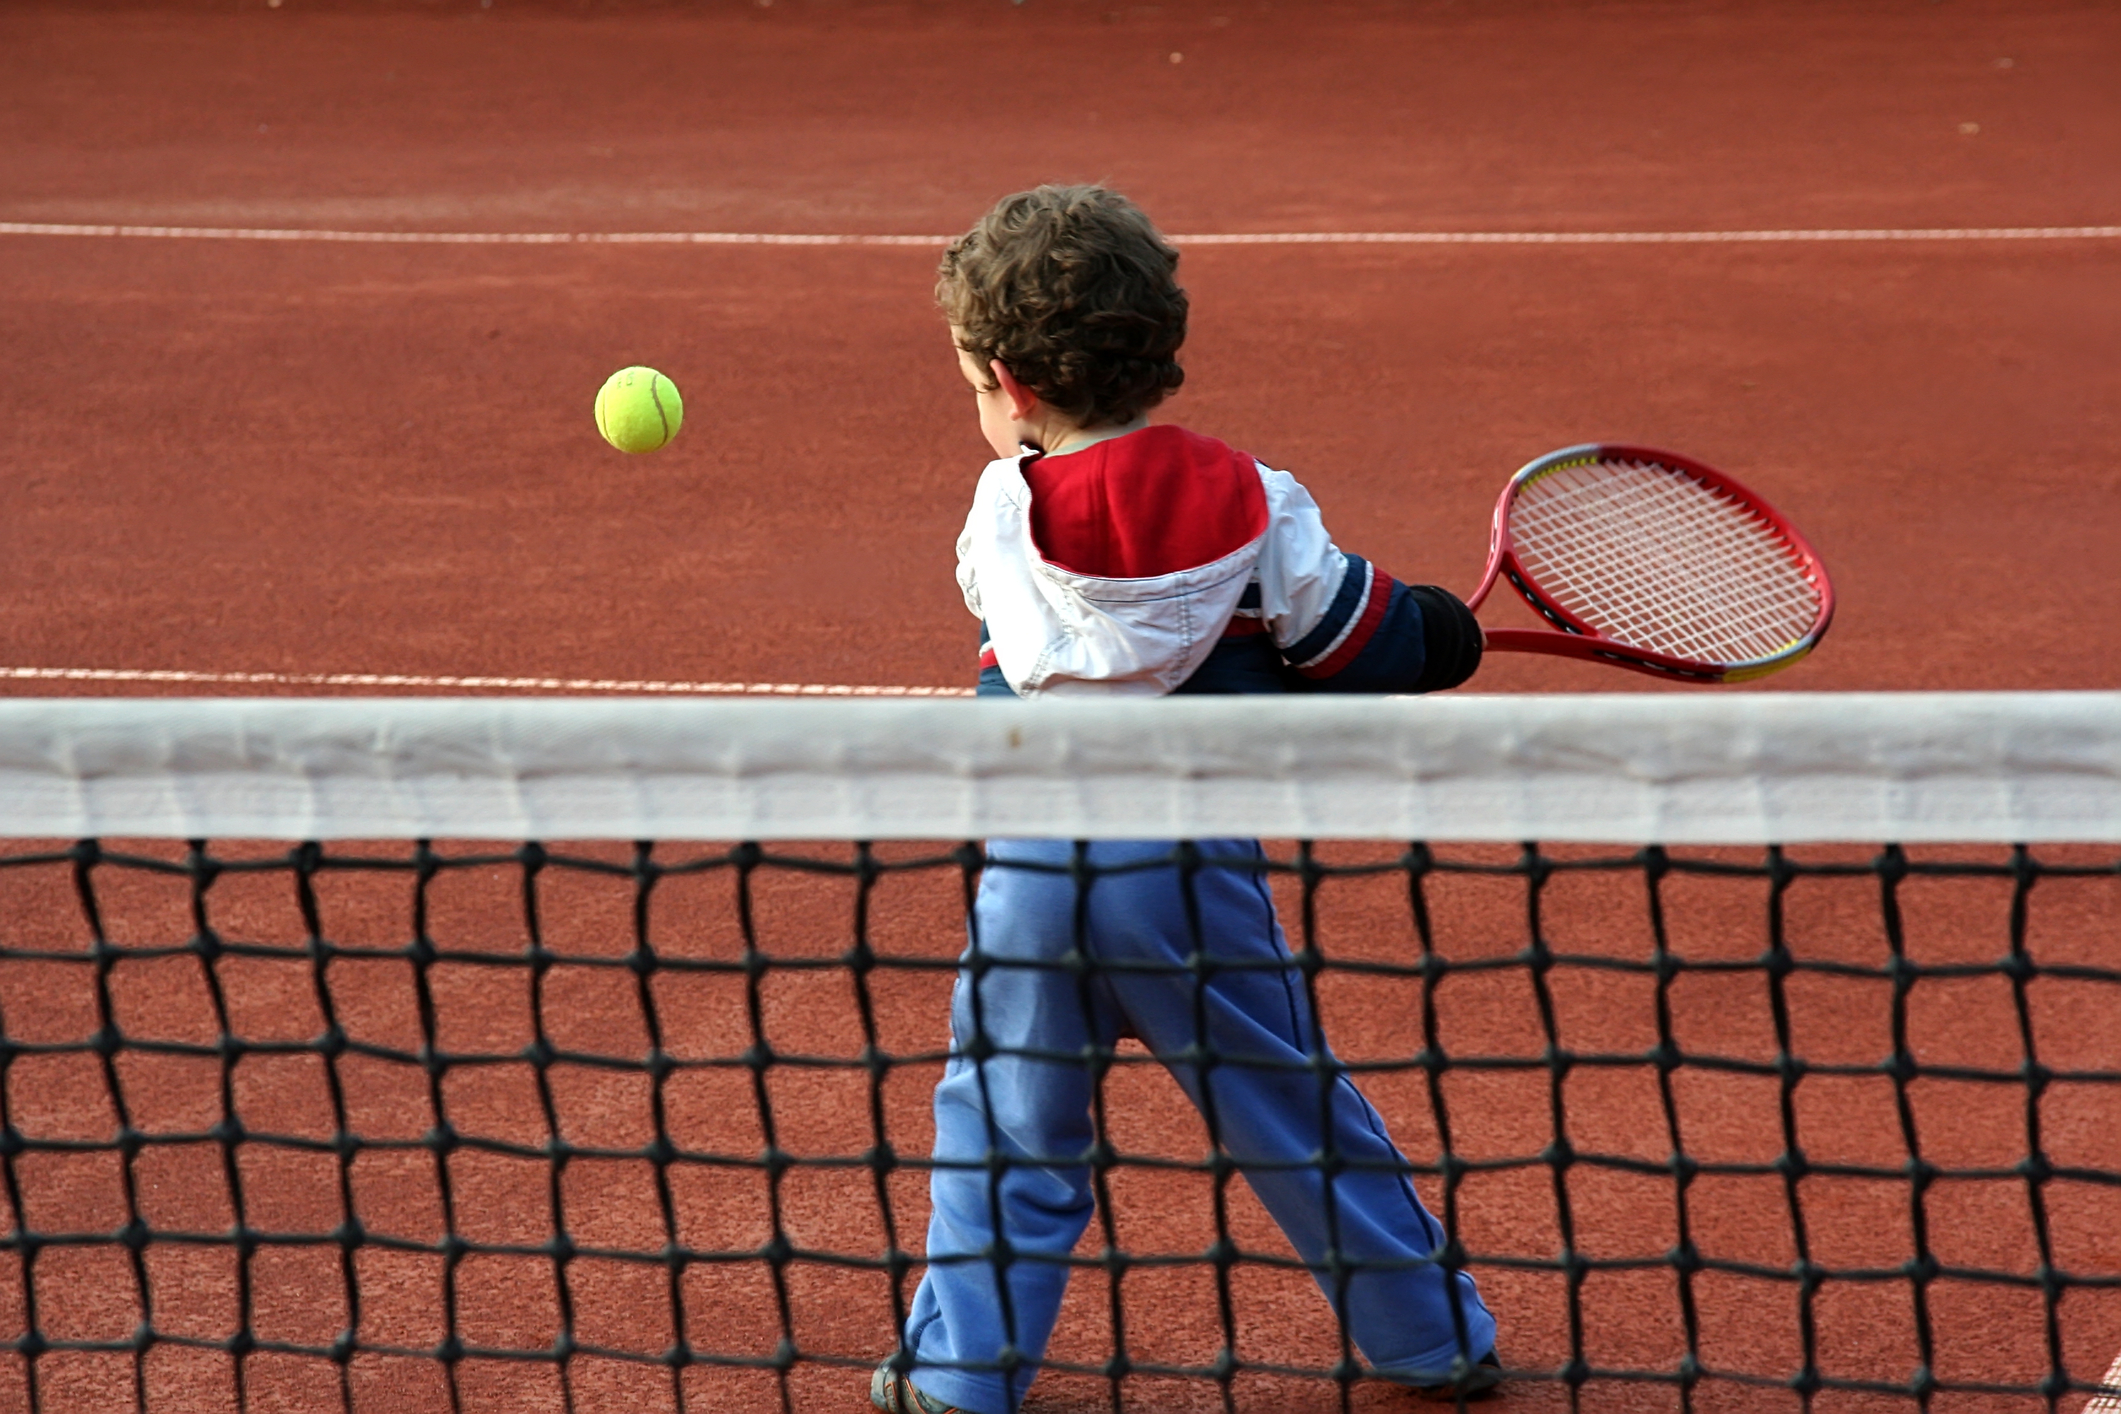 Long Term Athlete Development (LTAD). What is it ? and why is it controversial ?